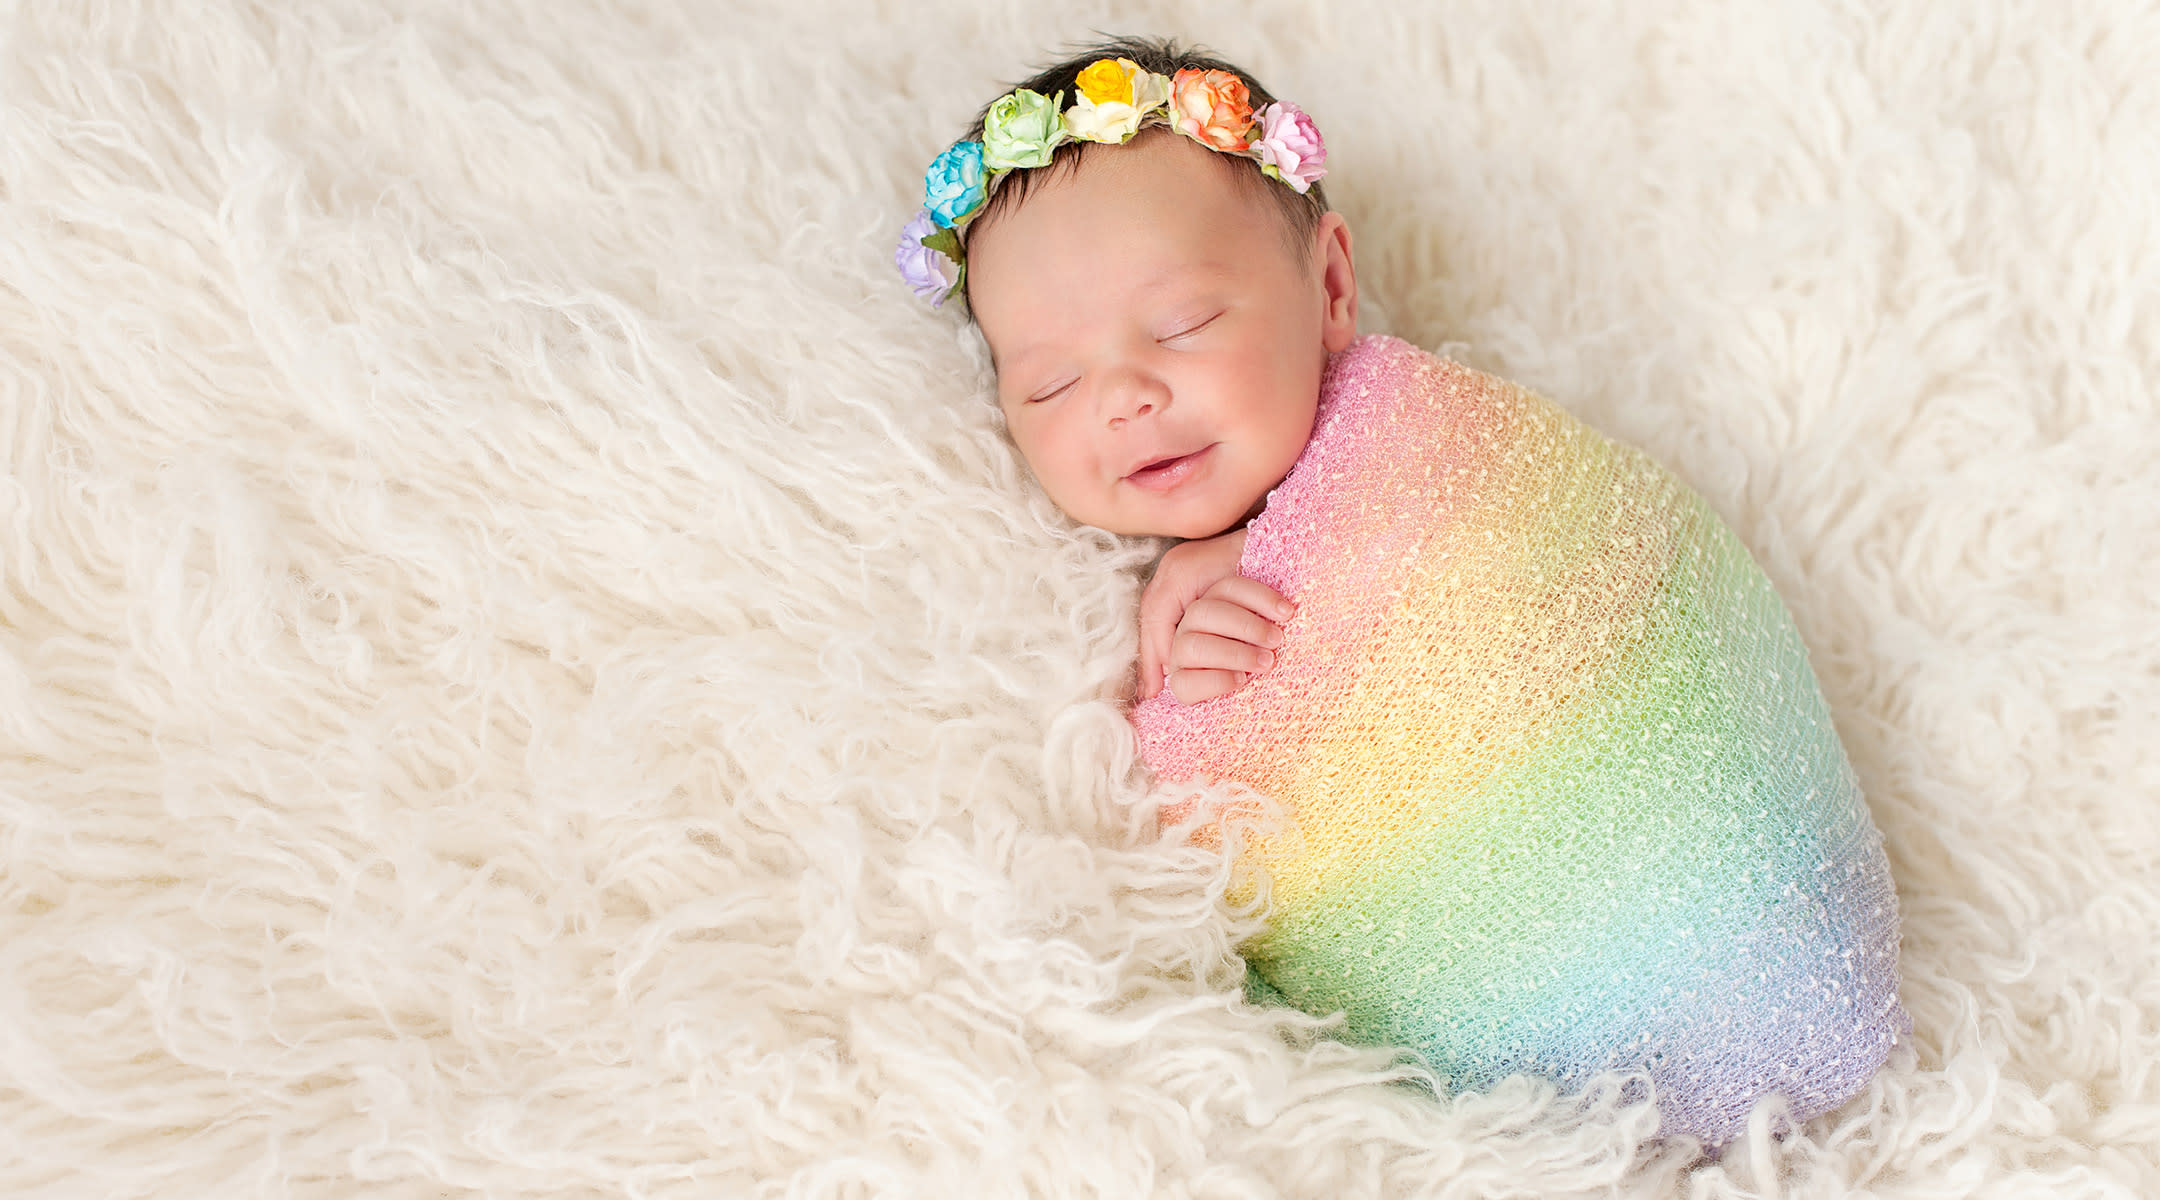 Rainbow Baby Origin Meaning and What It Means to Parents